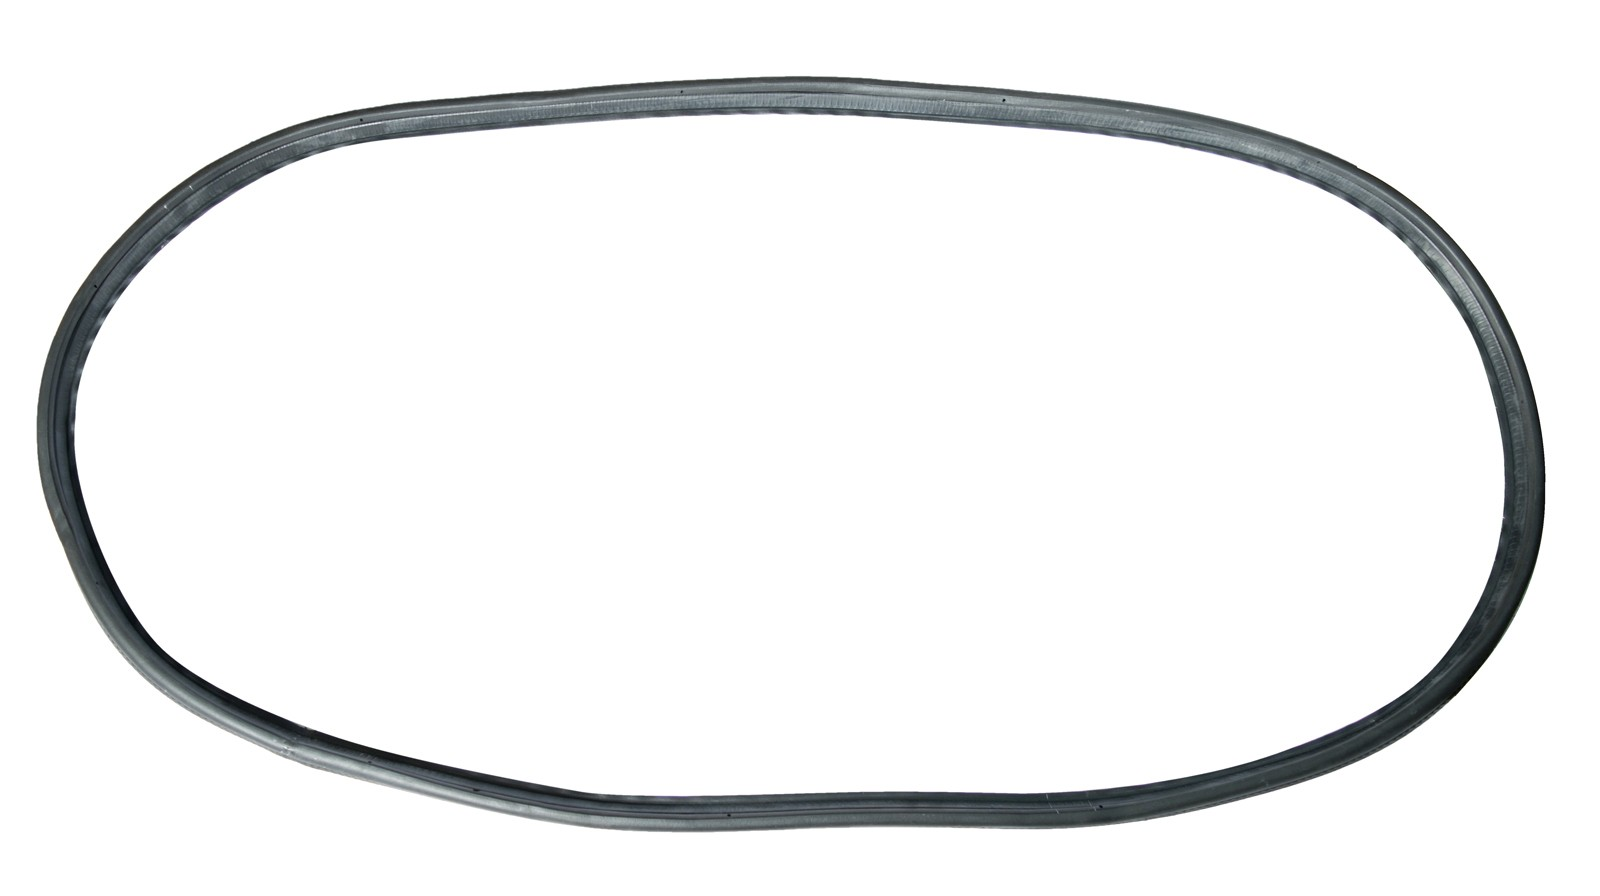 Ford Mustang Or Cobra Rear Deck Trunk Lid Rubber Weatherstrip Seal